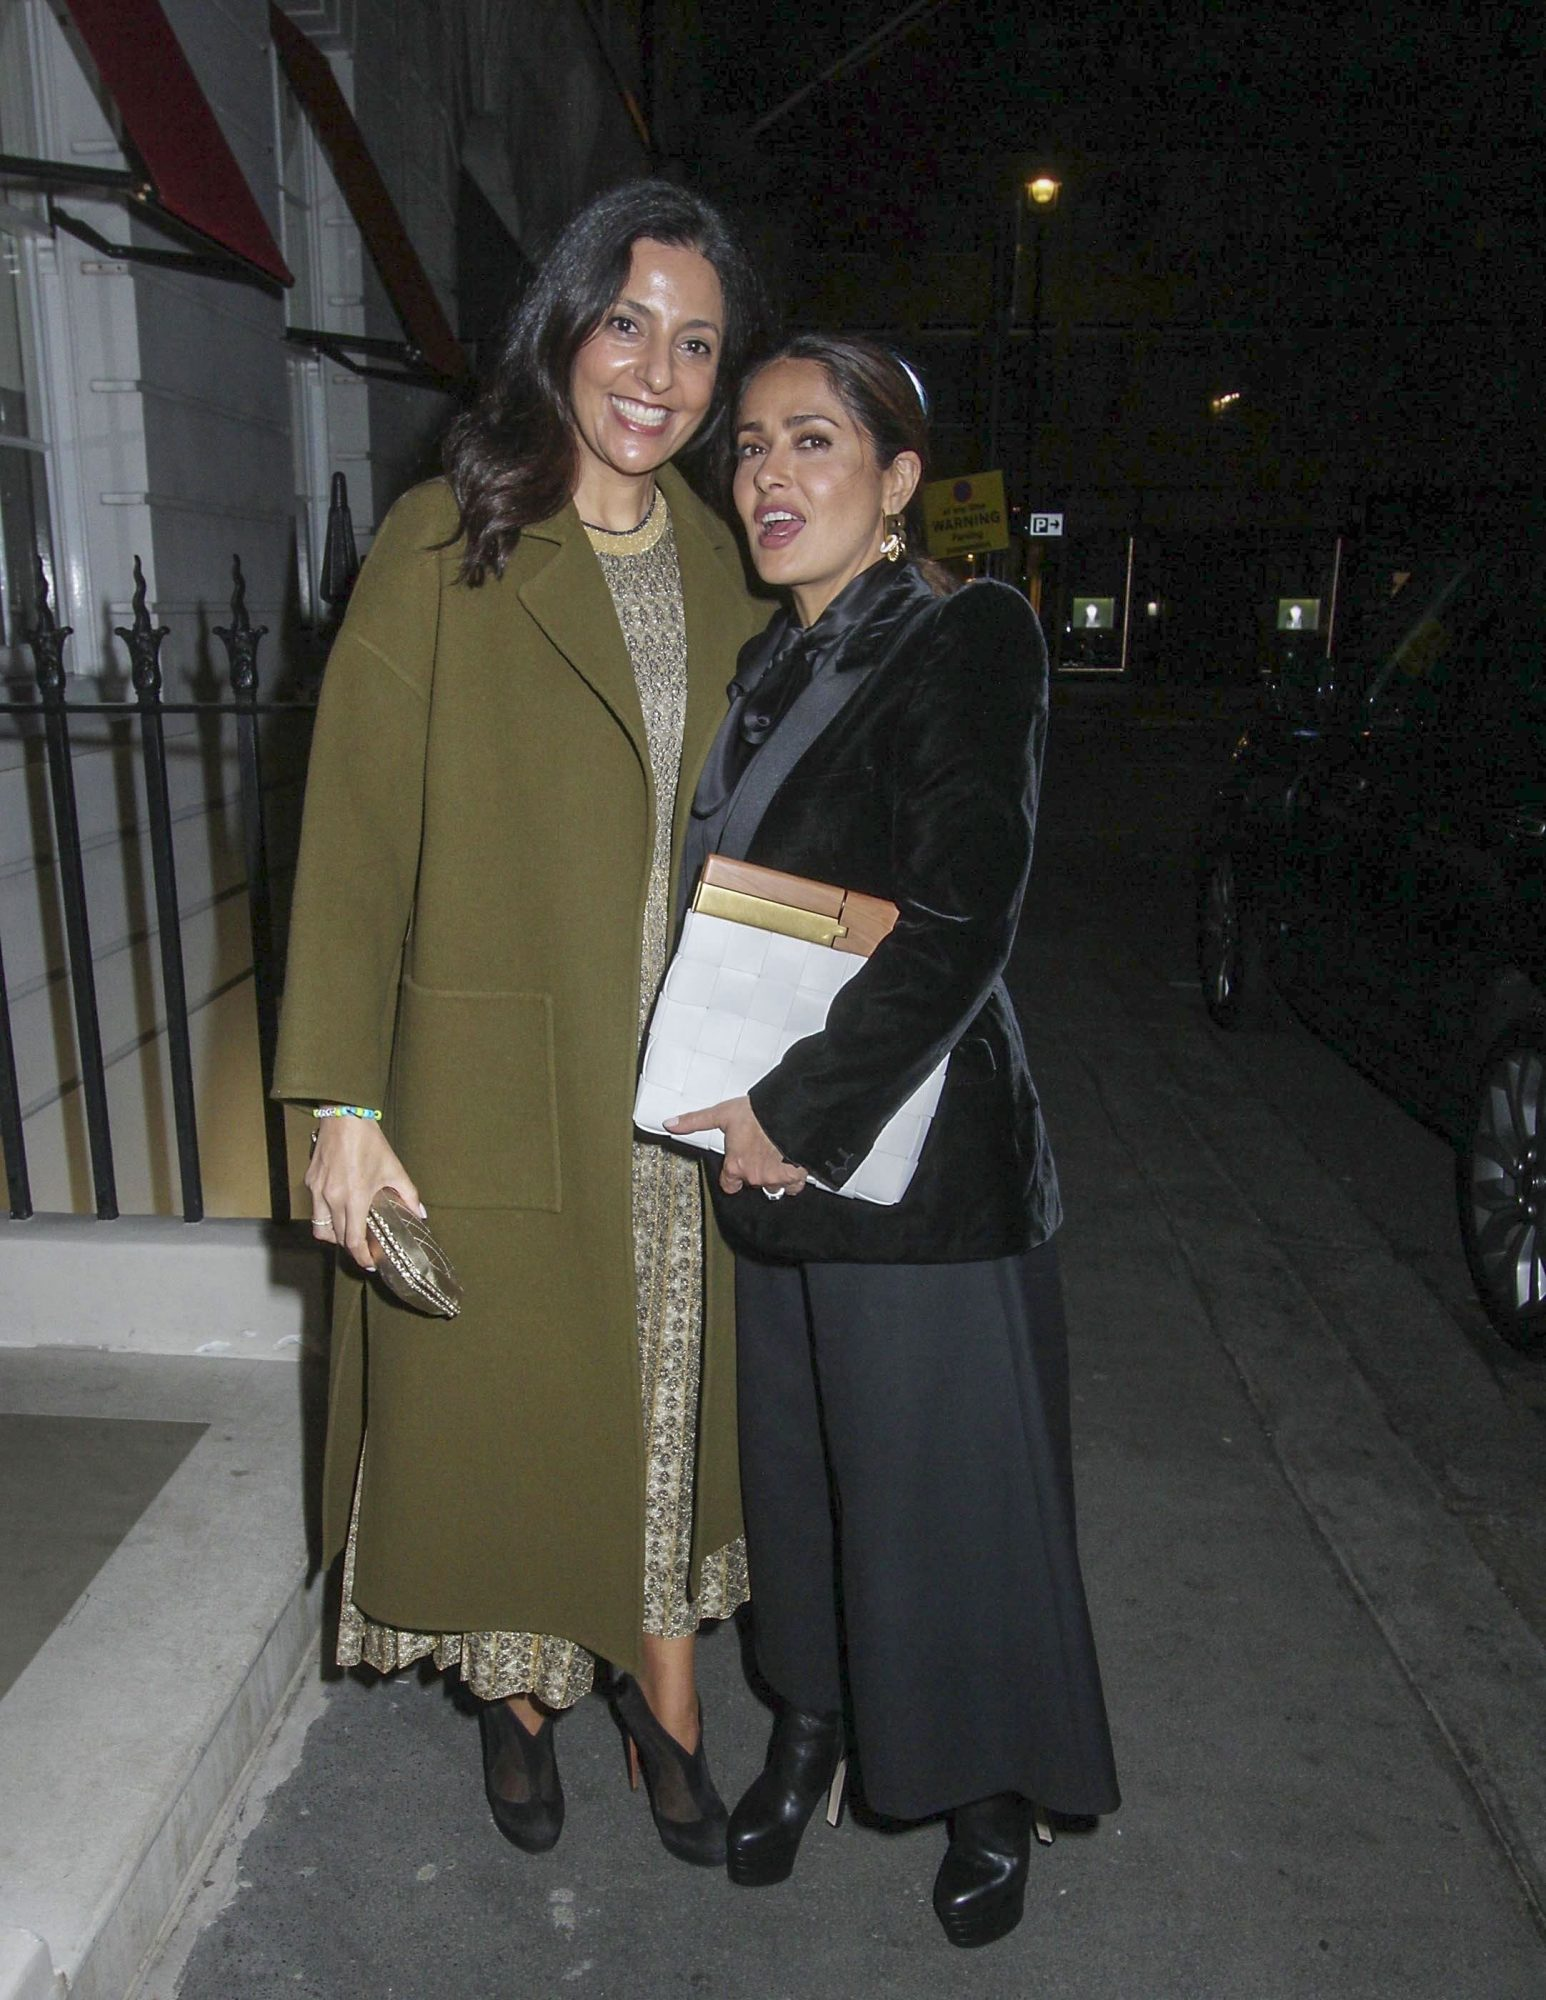 Salma Hayek and husband Francois-Henri Pinault pictured arriving to Oswald's in London.